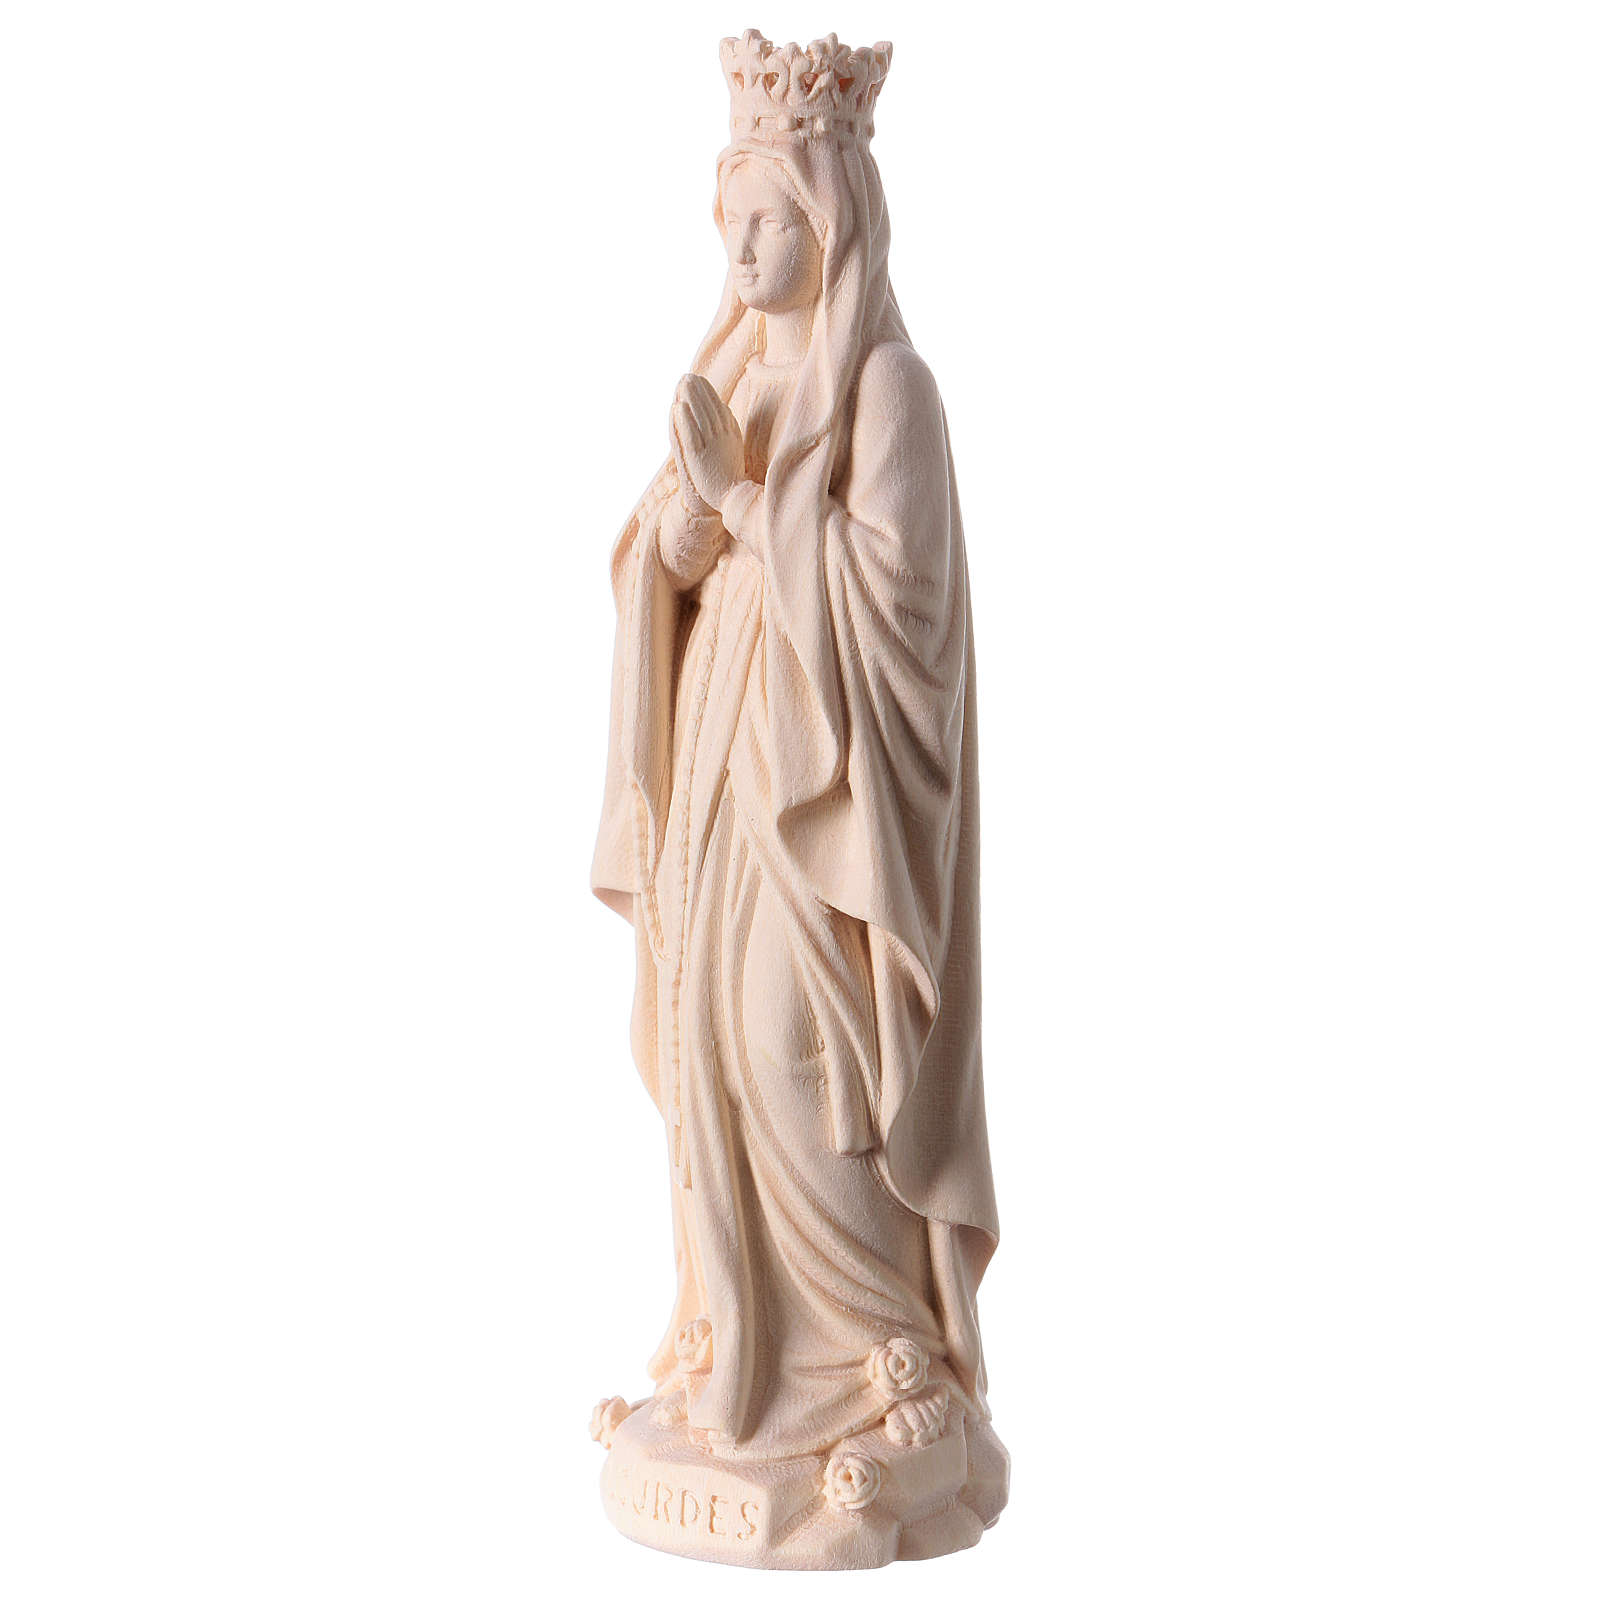 Our Lady of Lourdes with crown in natural wood of Valgardena 4